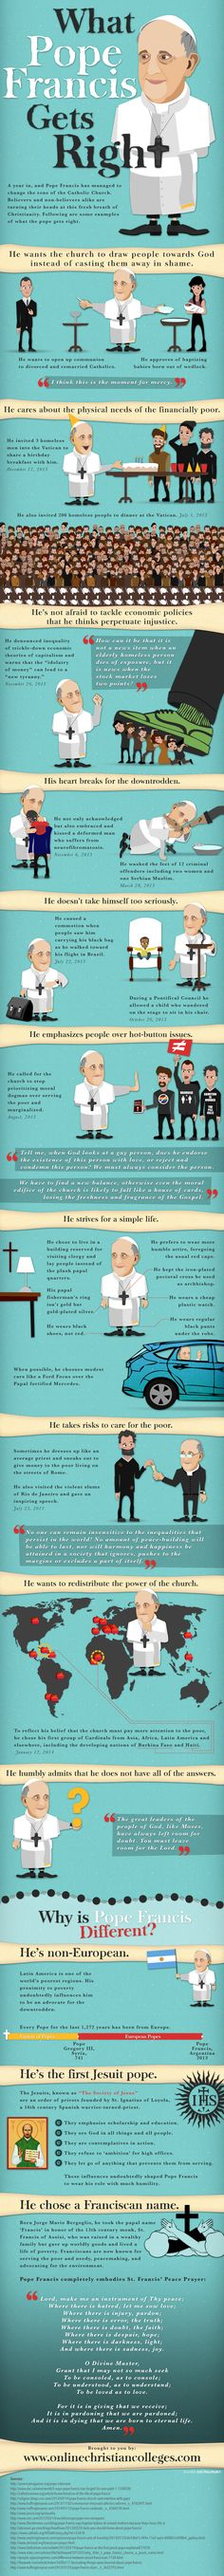 How Catholic Pope Francis Become the Pope of Change [infographic] - Infographics - Data Visualization